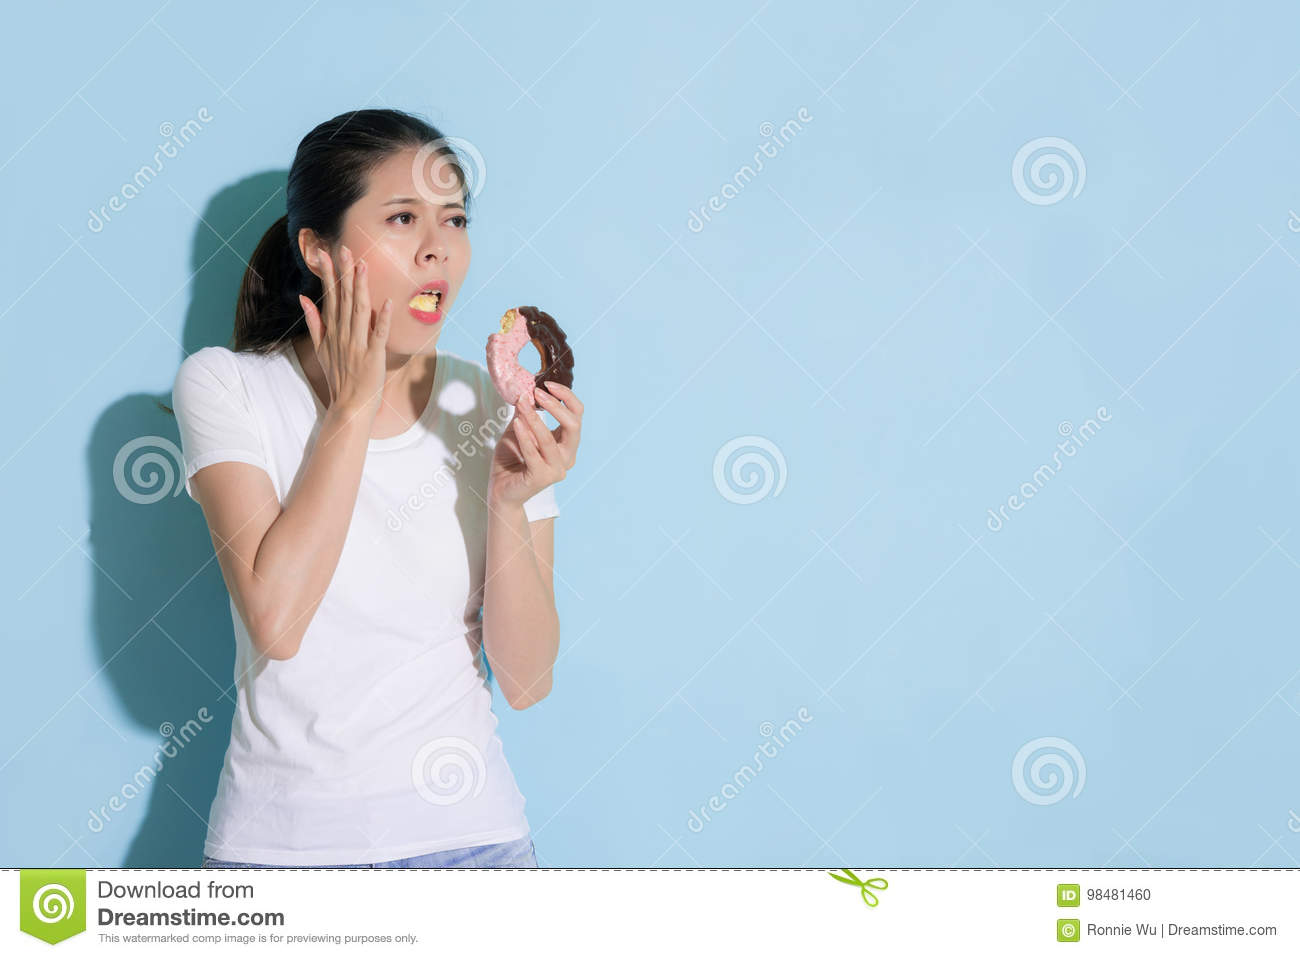 Download Pretty Attractive Girl Student Having Tooth Decay Stock Photo - Image of health, hygiene: 98481460